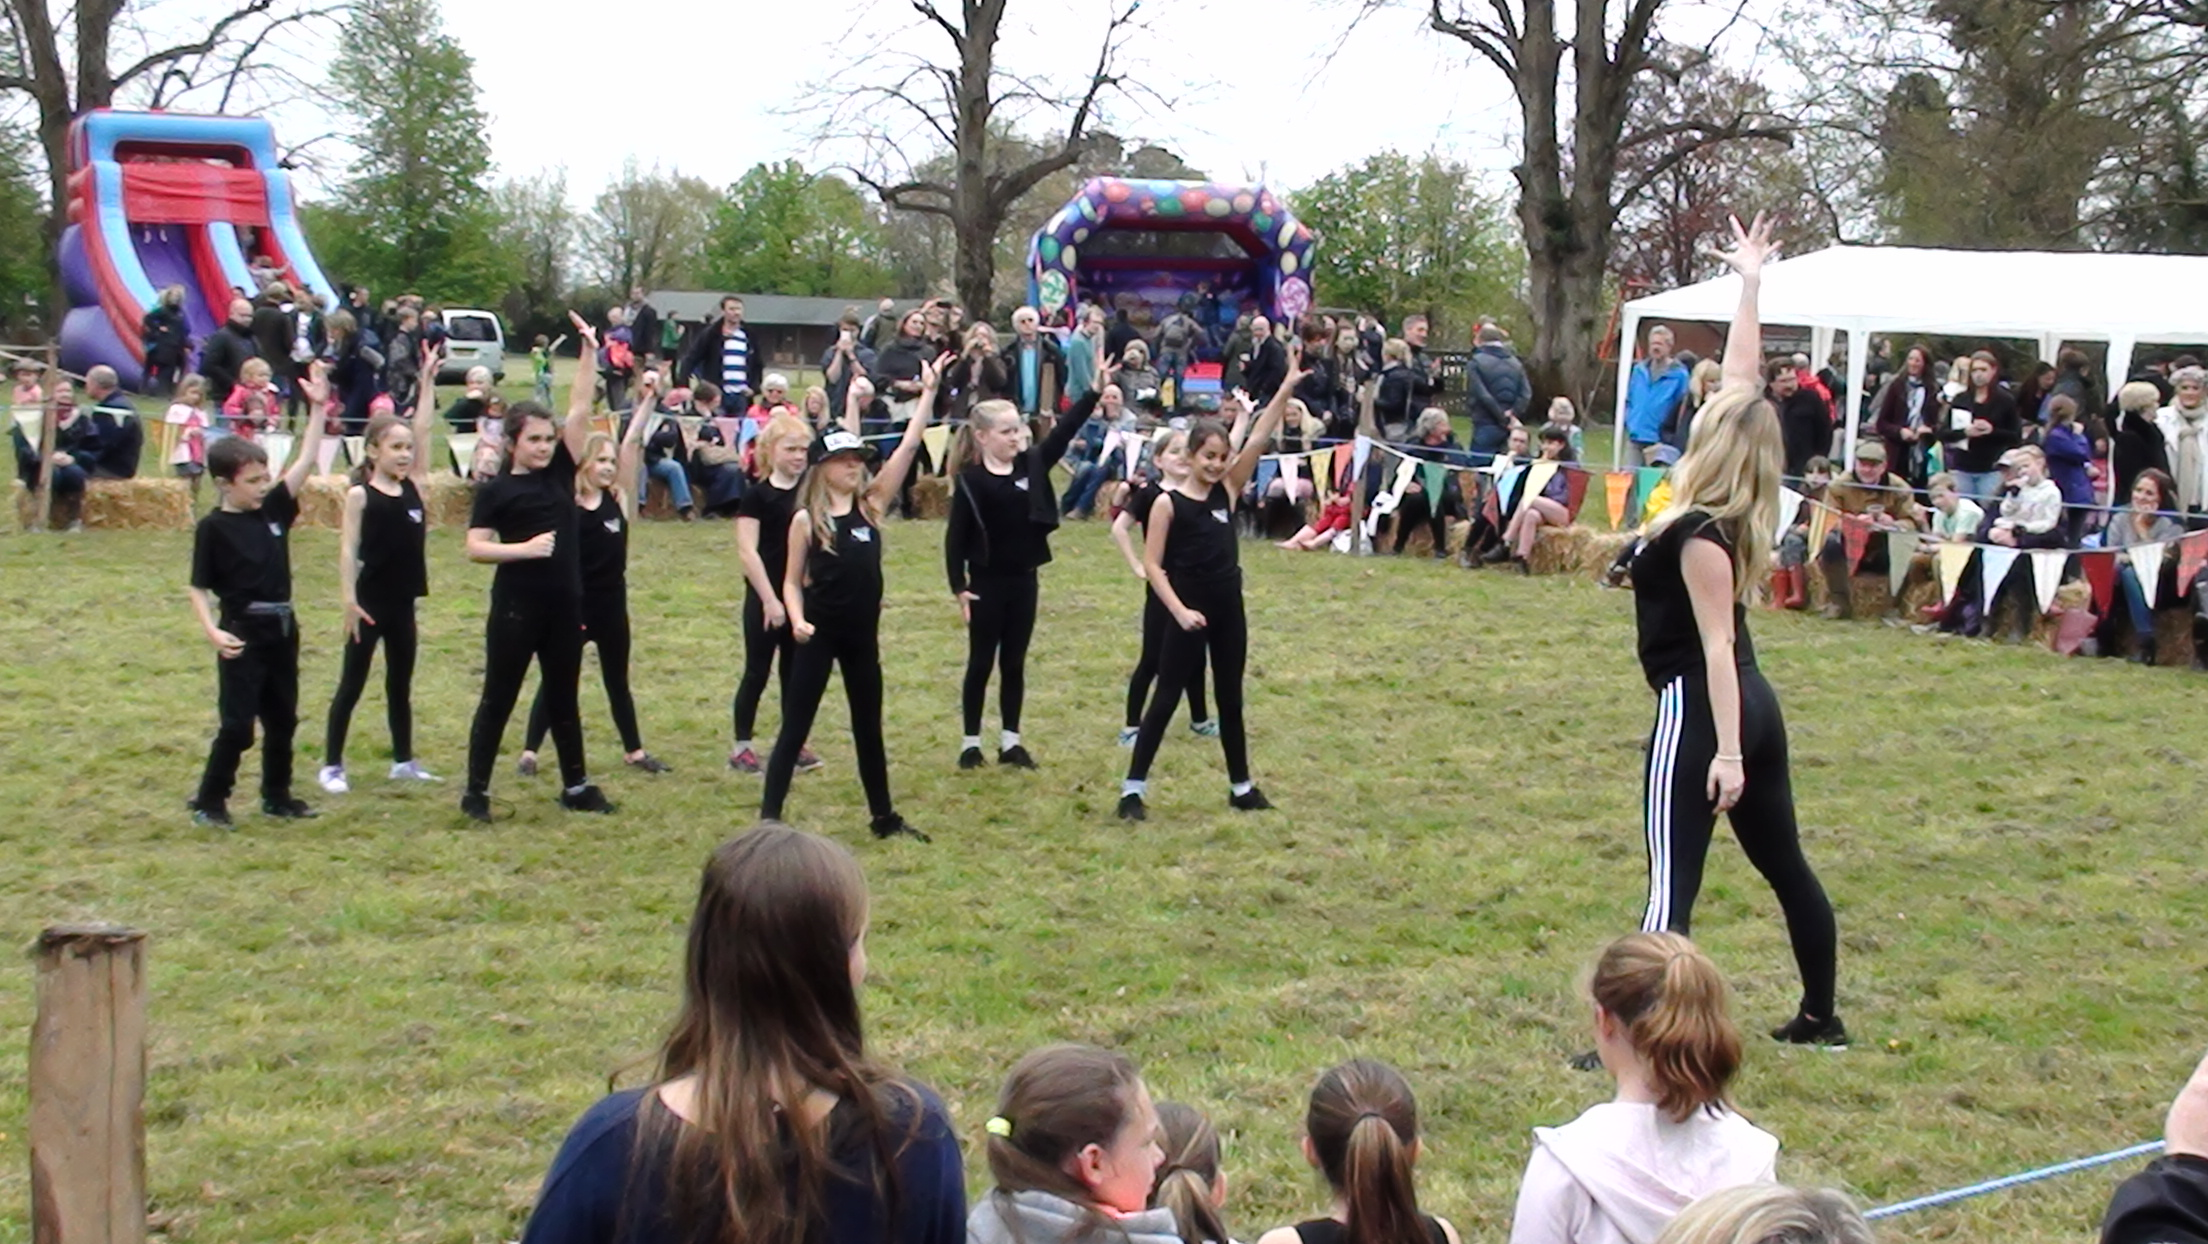 Well done to everyone who danced at The Groombridge May Fair, you were all amazing!